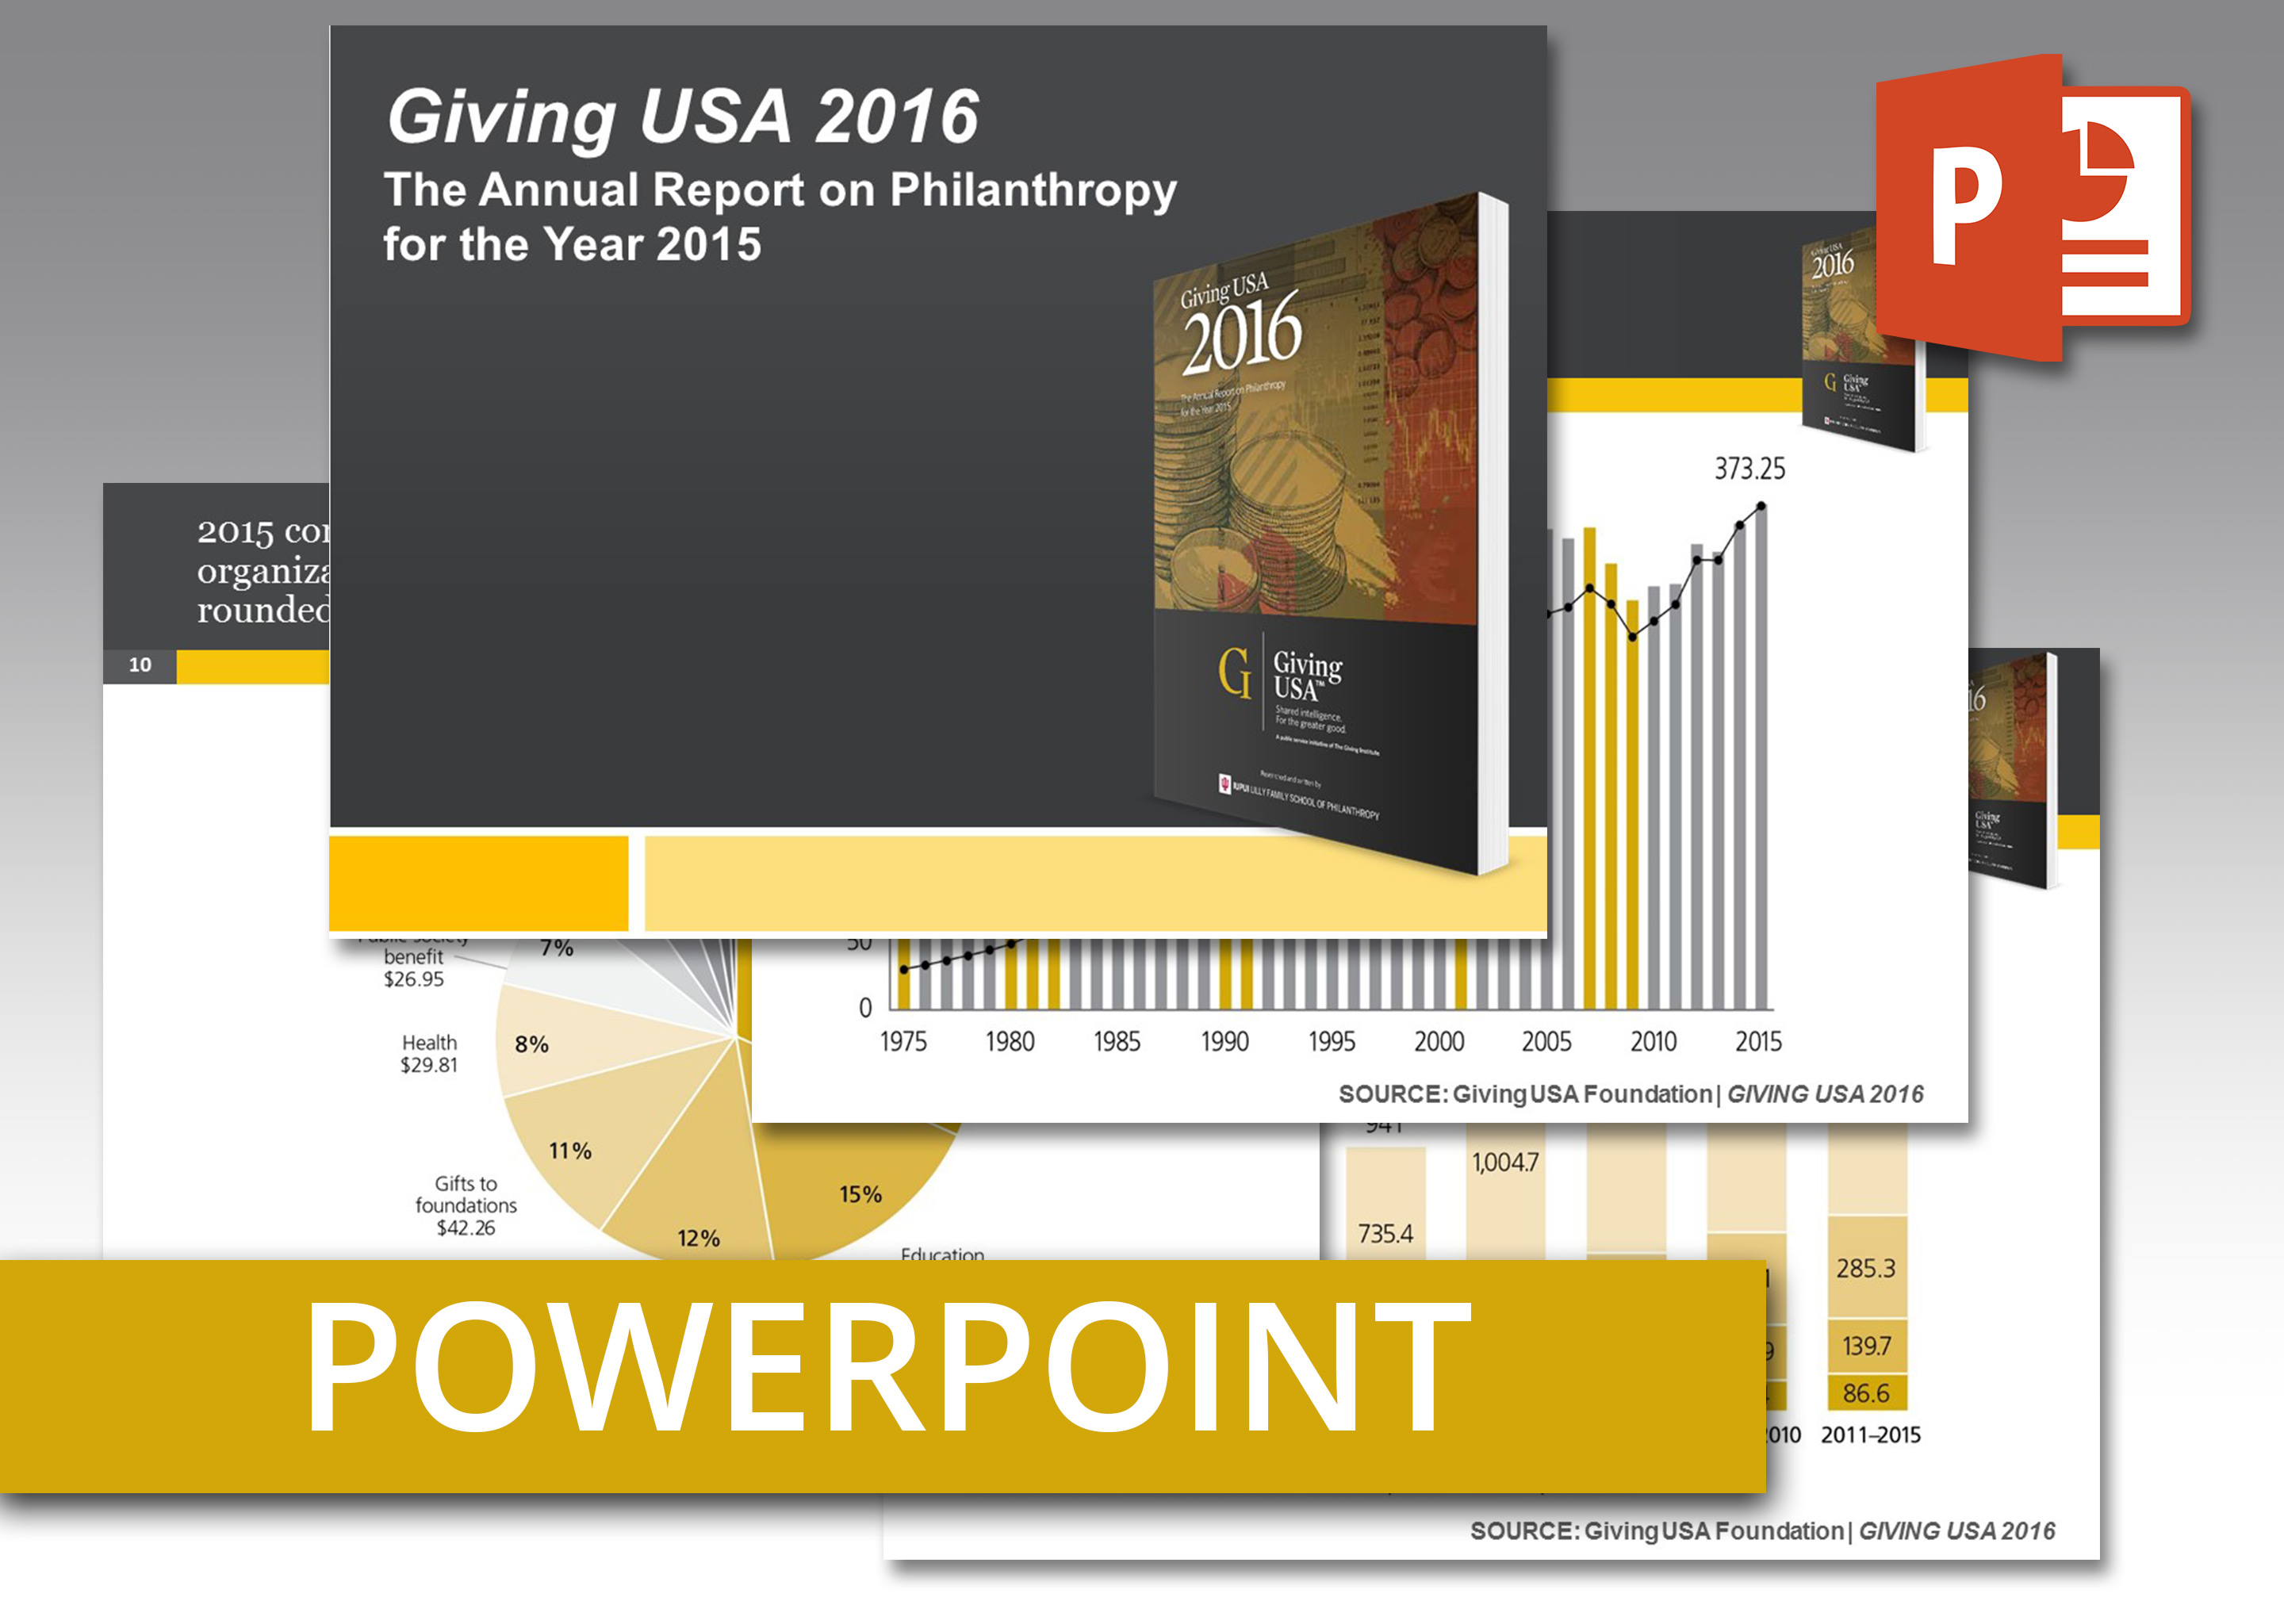 Coolmathgamesus  Pleasing Giving Usa  Powerpoint An Easytouse Presentation Of Report  With Lovable Giving Usa  Powerpoint An Easytouse Presentation Of Report Findings Including Talking Points With Delightful Academic Powerpoint Template Also Powerpoint Animation Presentation In Addition Powerpoint Church Templates And Free Powerpoint Background Images As Well As Begron Powerpoint Additionally Powerpoint Mac Download Free From Givingusaorg With Coolmathgamesus  Lovable Giving Usa  Powerpoint An Easytouse Presentation Of Report  With Delightful Giving Usa  Powerpoint An Easytouse Presentation Of Report Findings Including Talking Points And Pleasing Academic Powerpoint Template Also Powerpoint Animation Presentation In Addition Powerpoint Church Templates From Givingusaorg